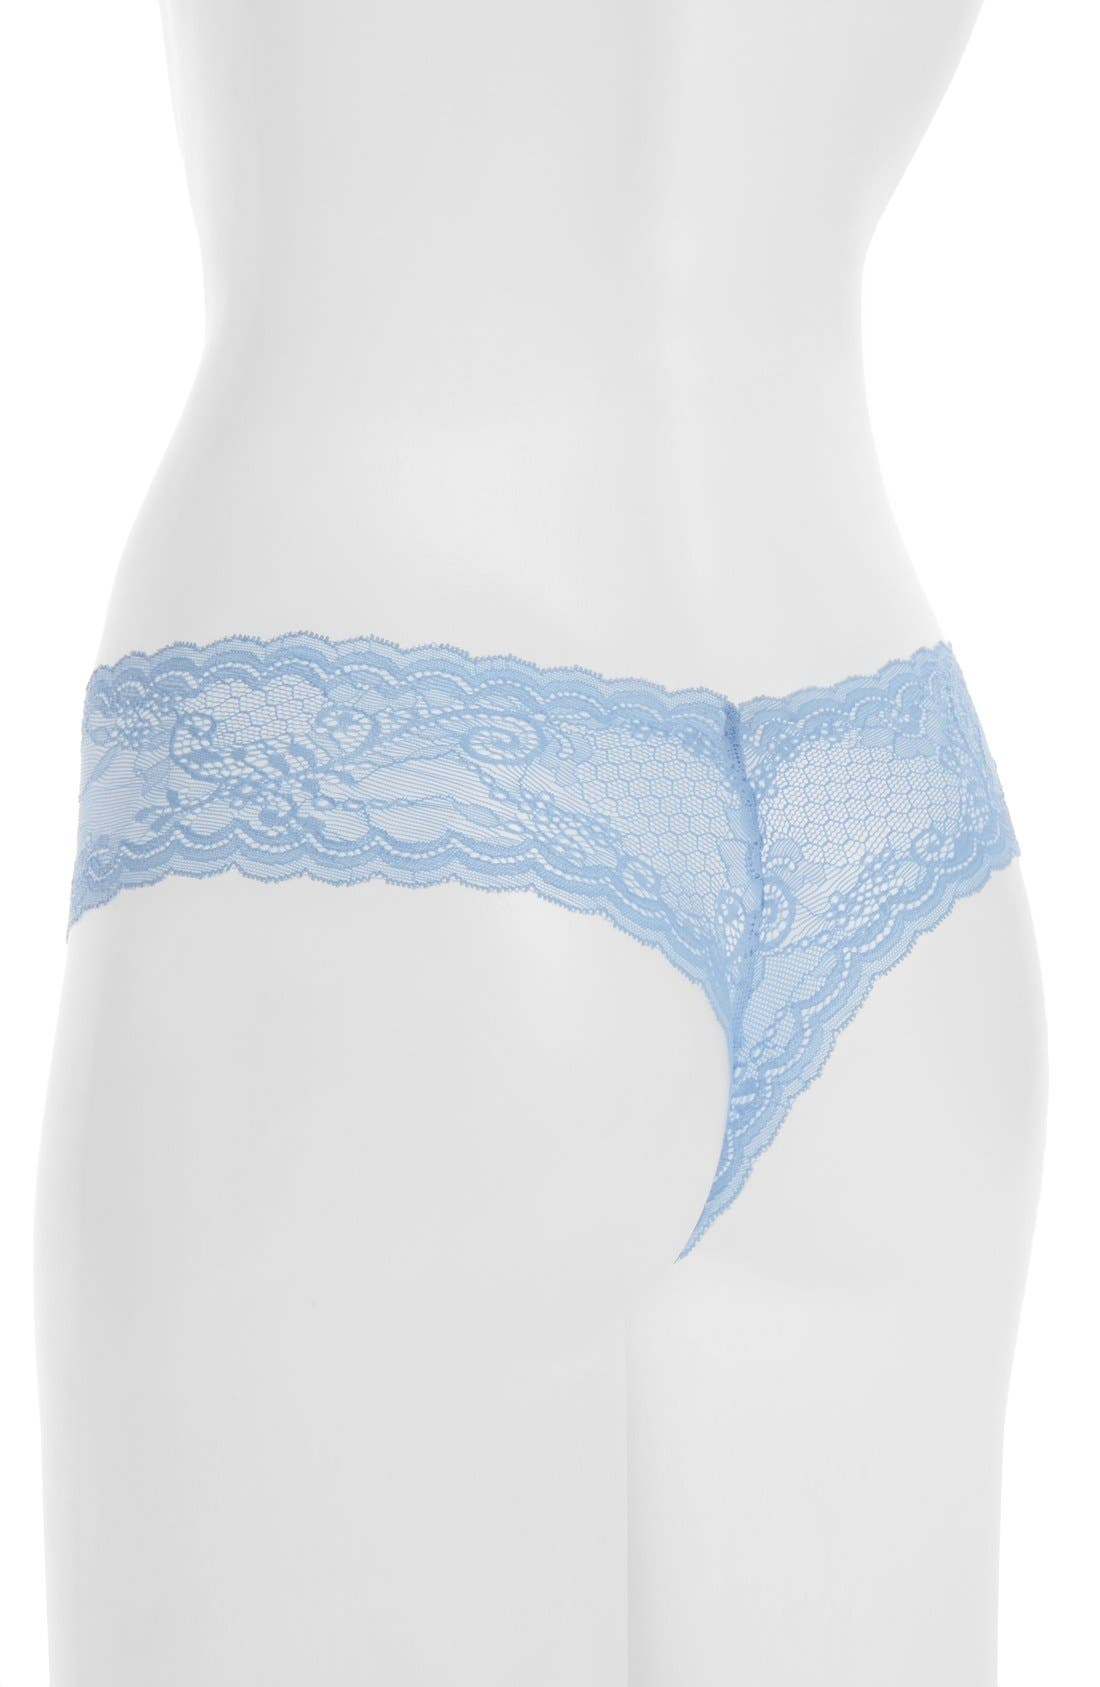 'Trenta' Low Rise Lace Thong,                             Alternate thumbnail 54, color,